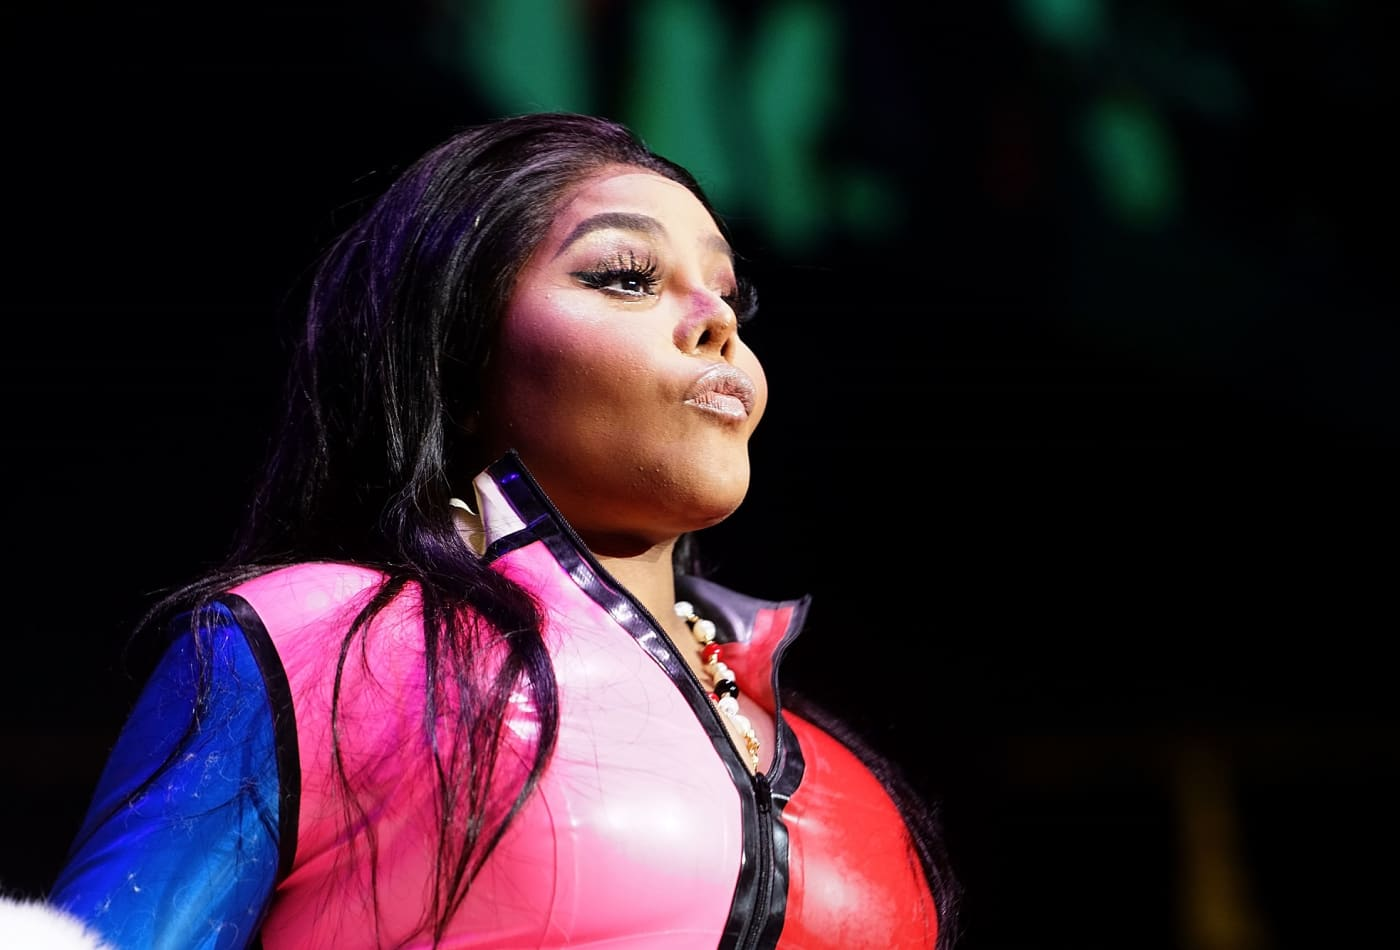 Buy Lil Kim's NJ mansion dream home at auction for $100